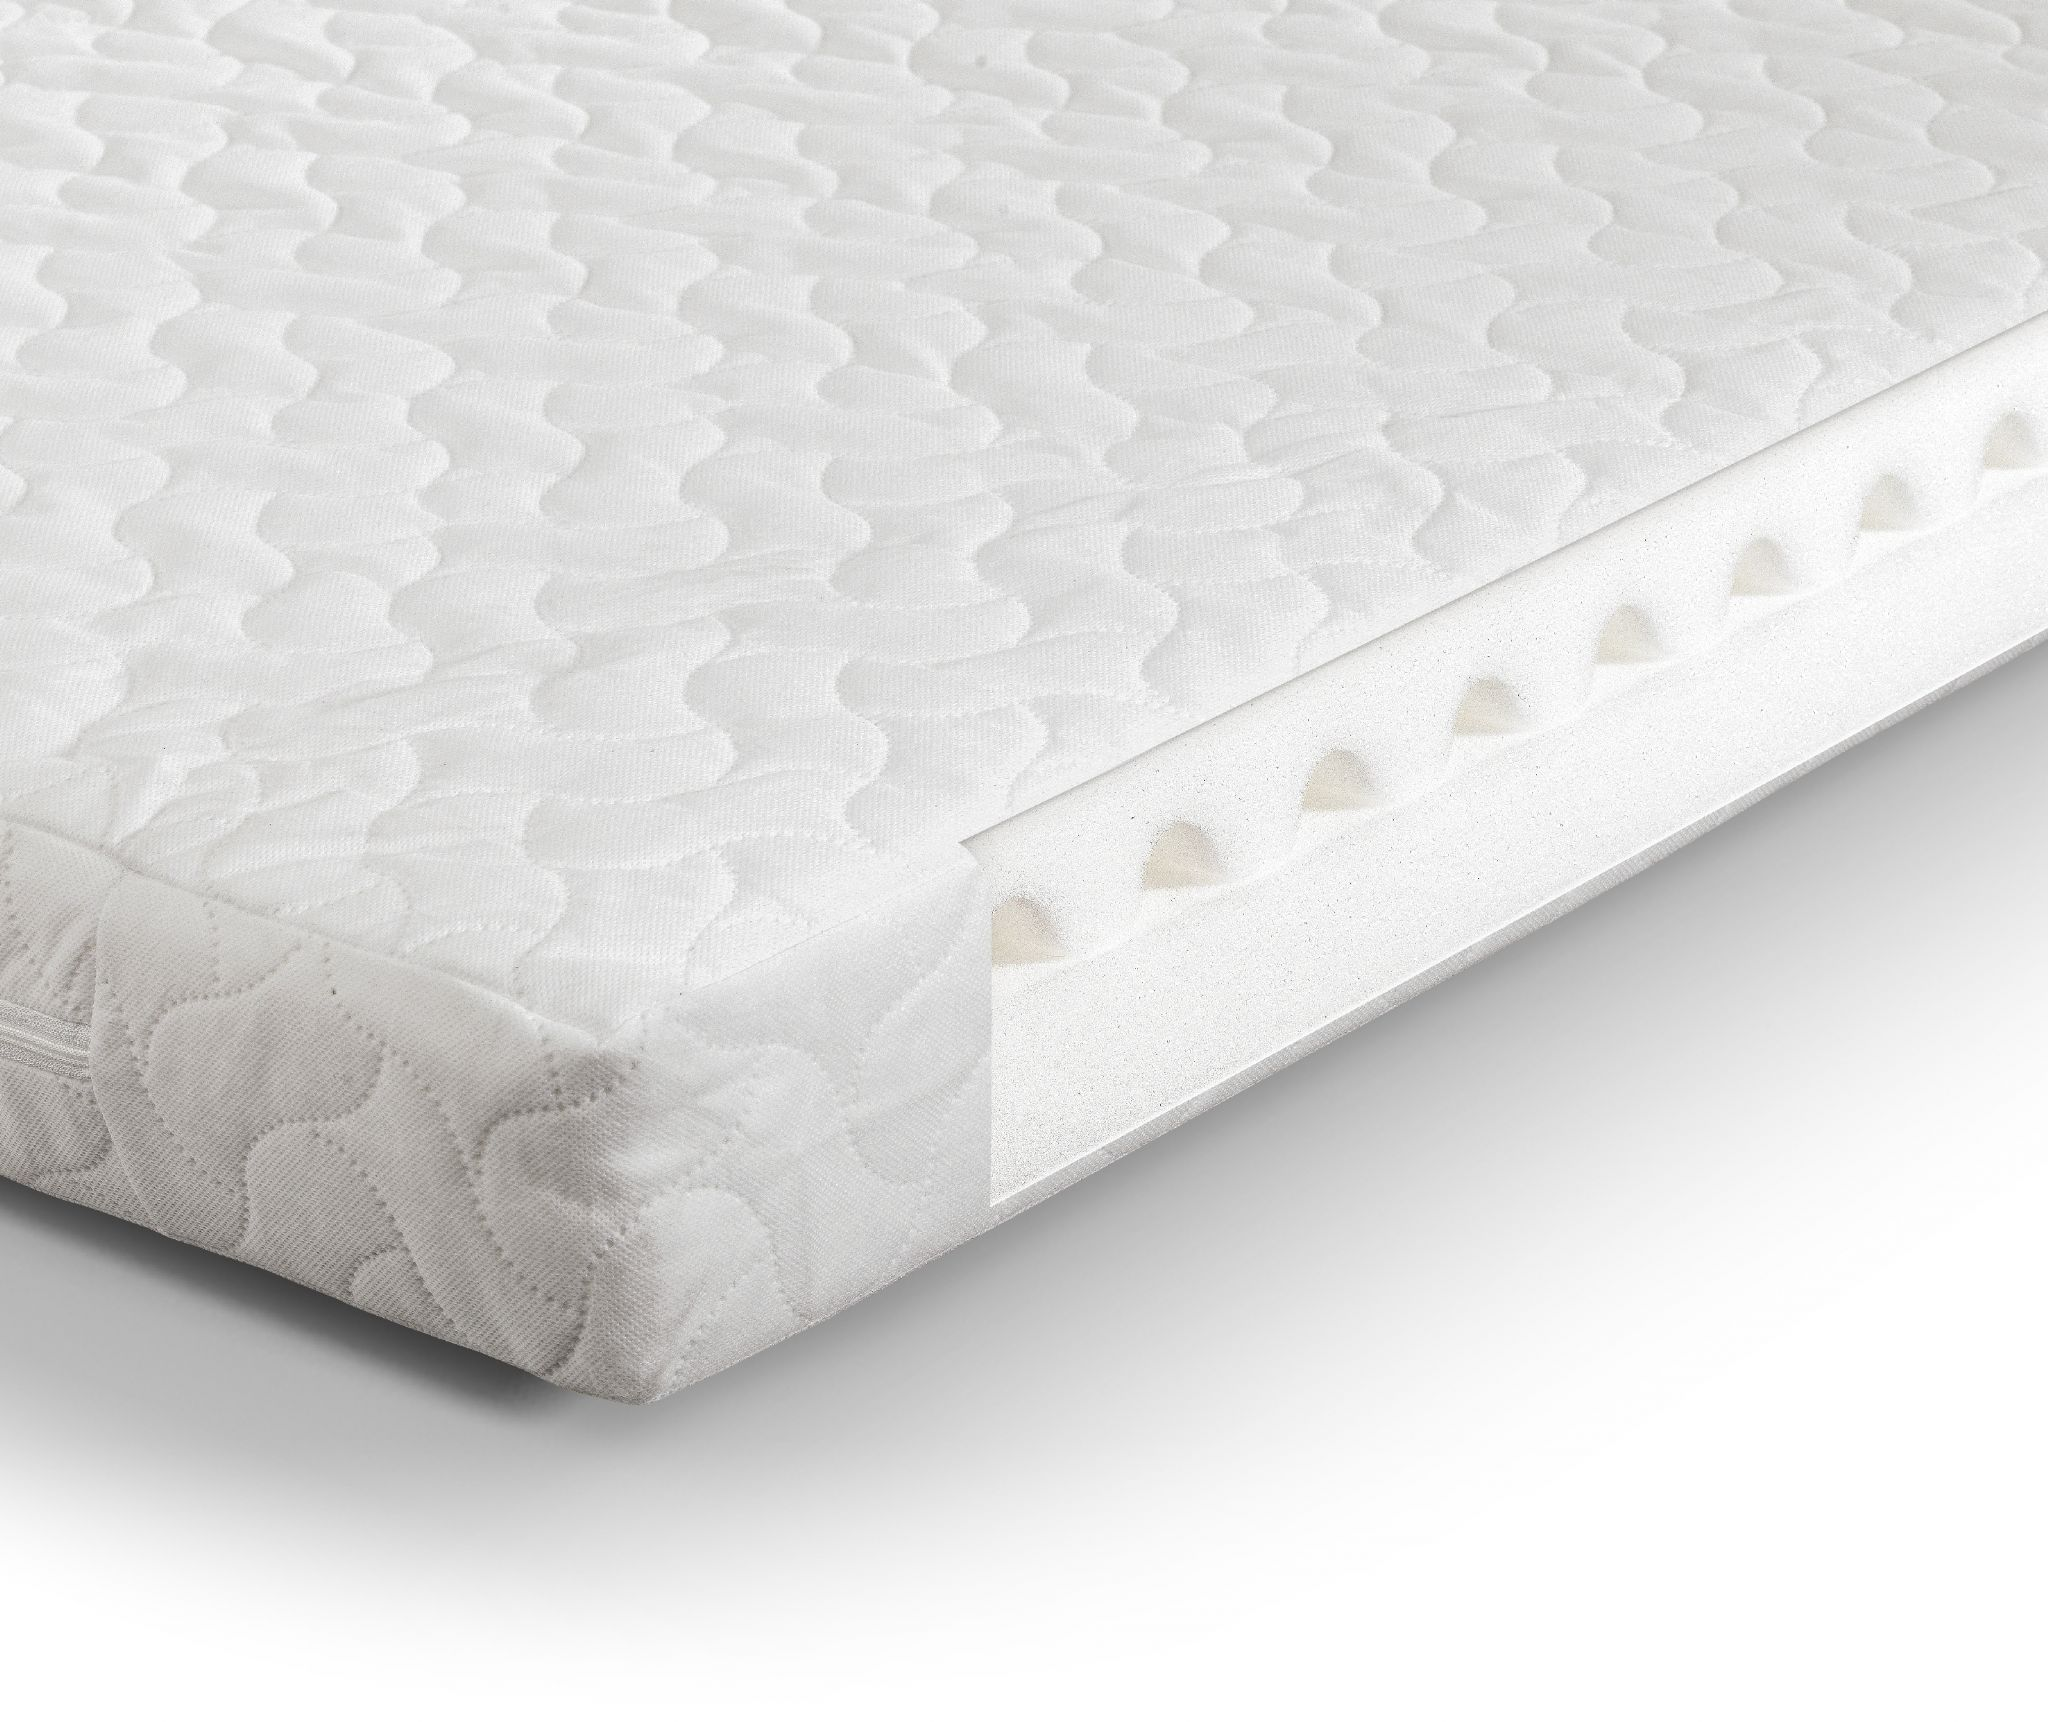 Comfy Dual Layer Cotbed Baby Bed Mattress JB02